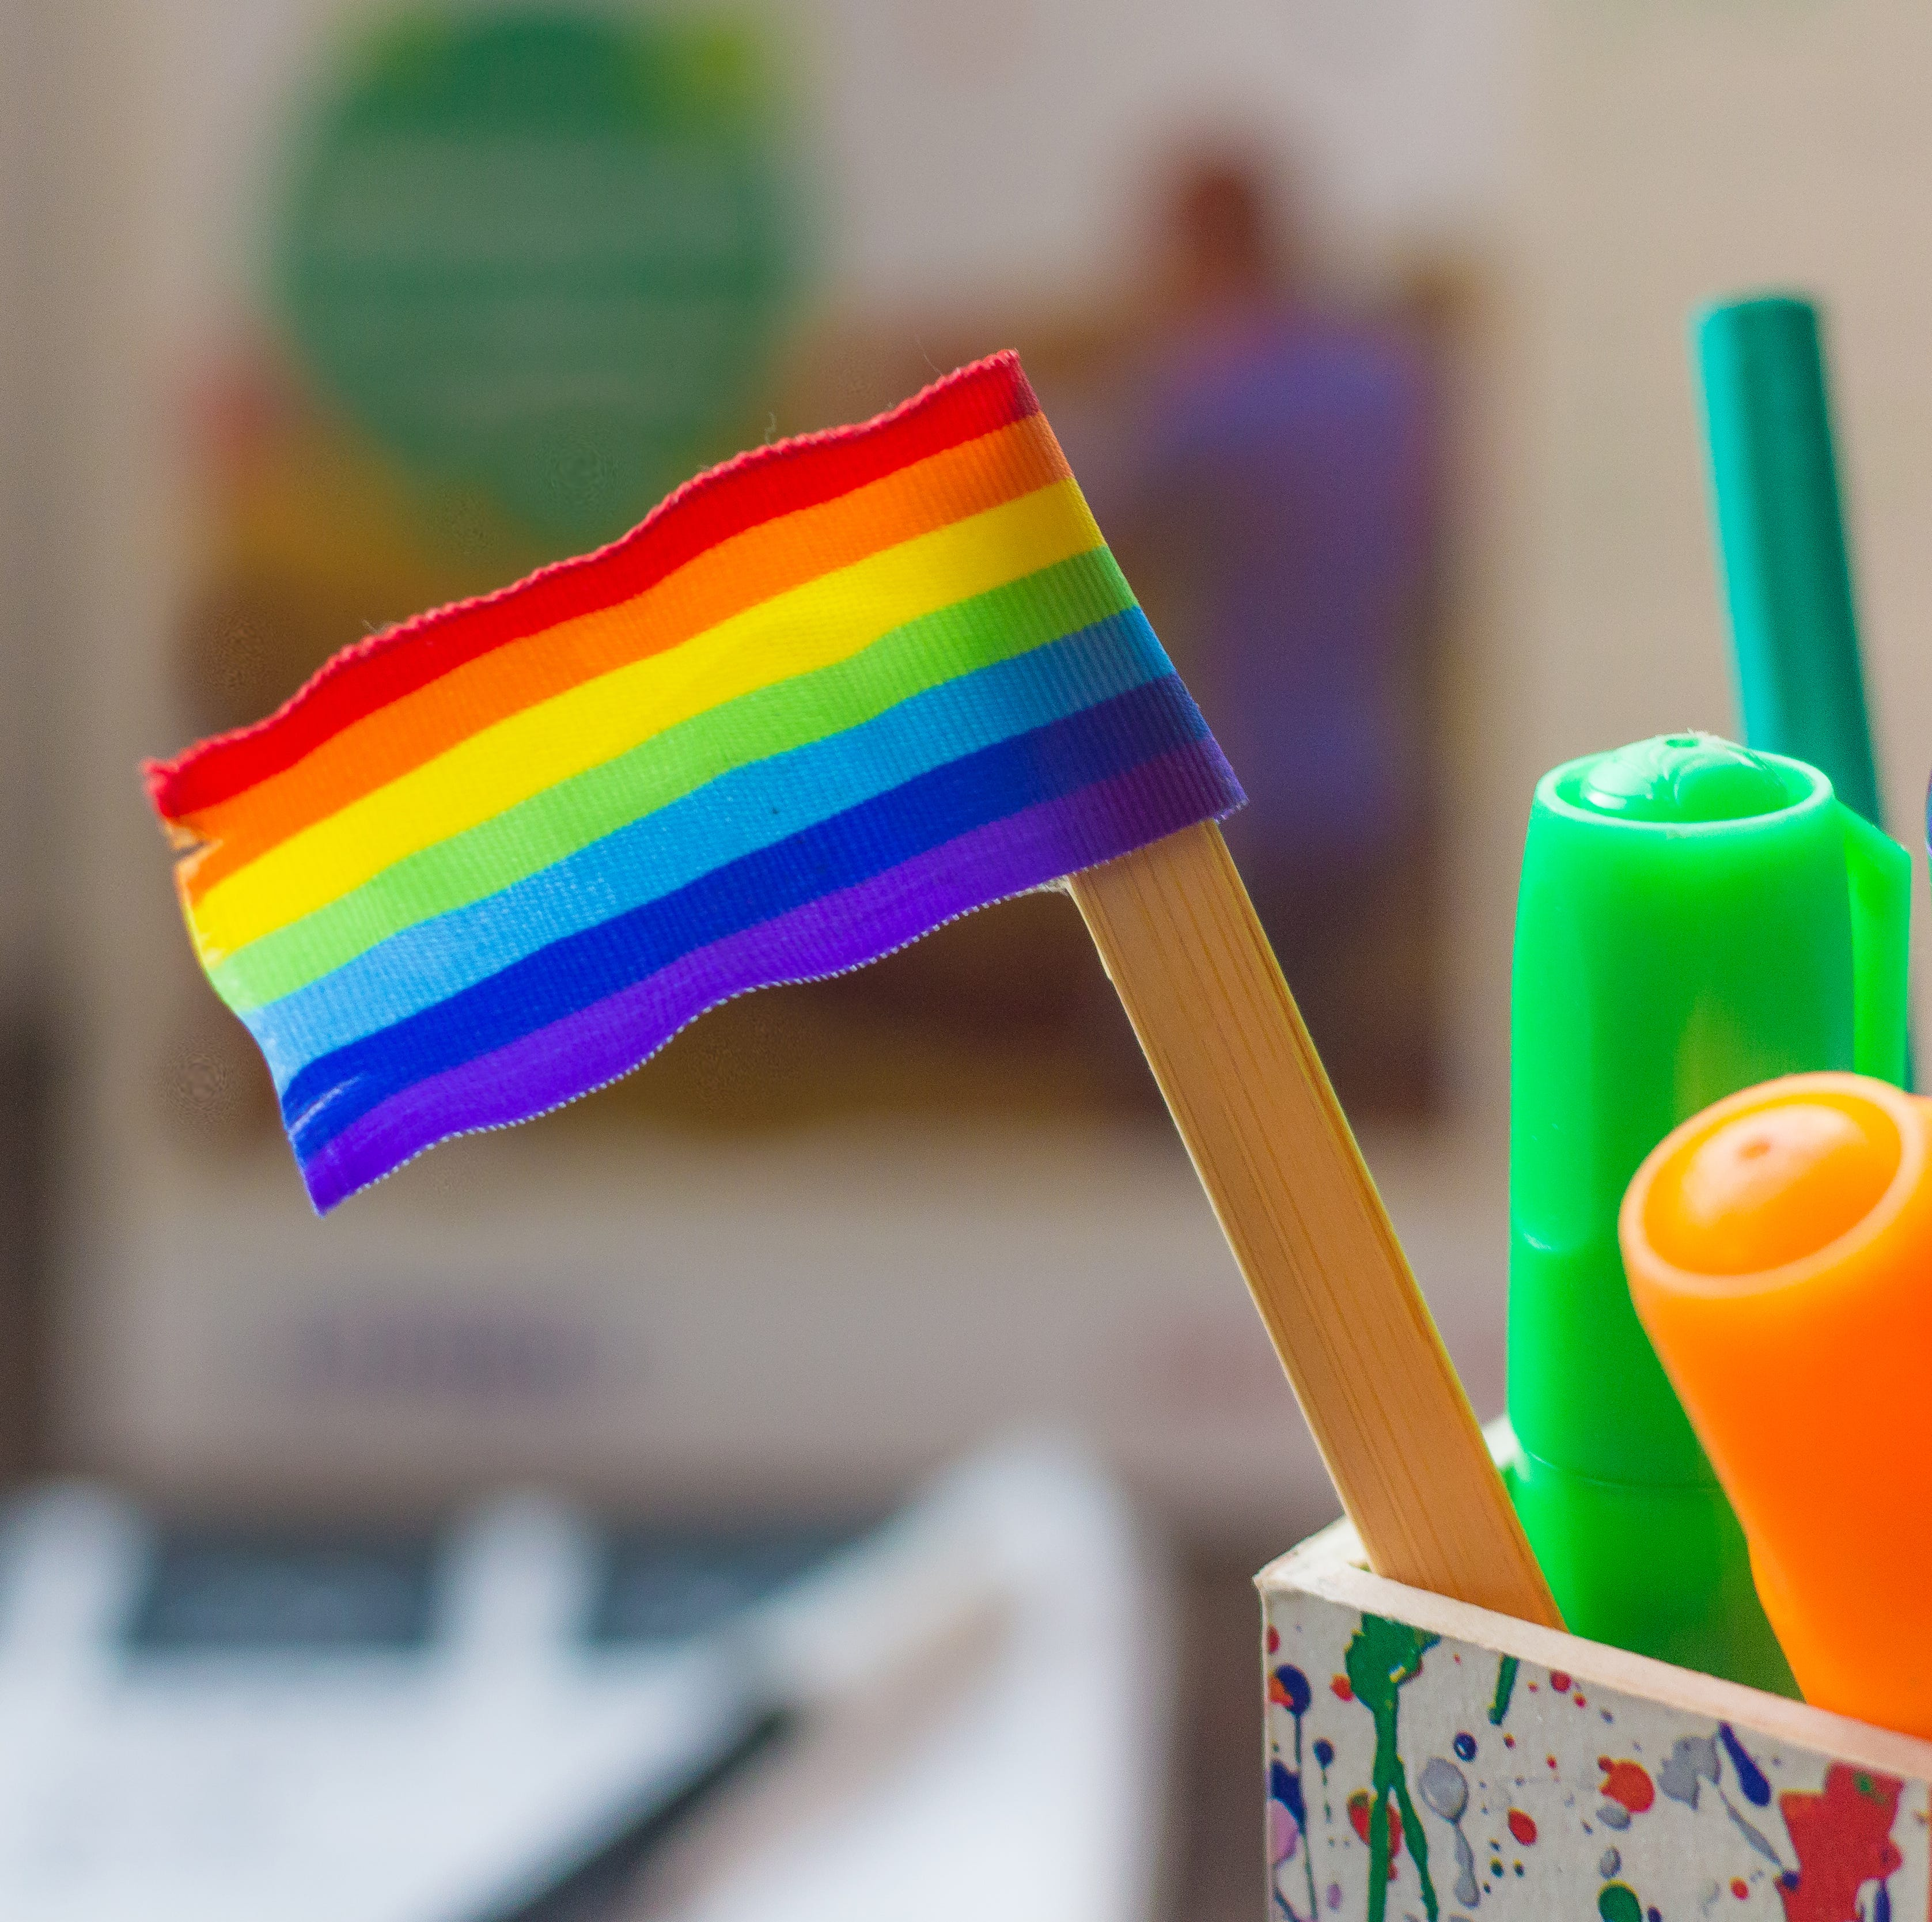 LGBT-inclusive curriculum will make schools smarter, safer